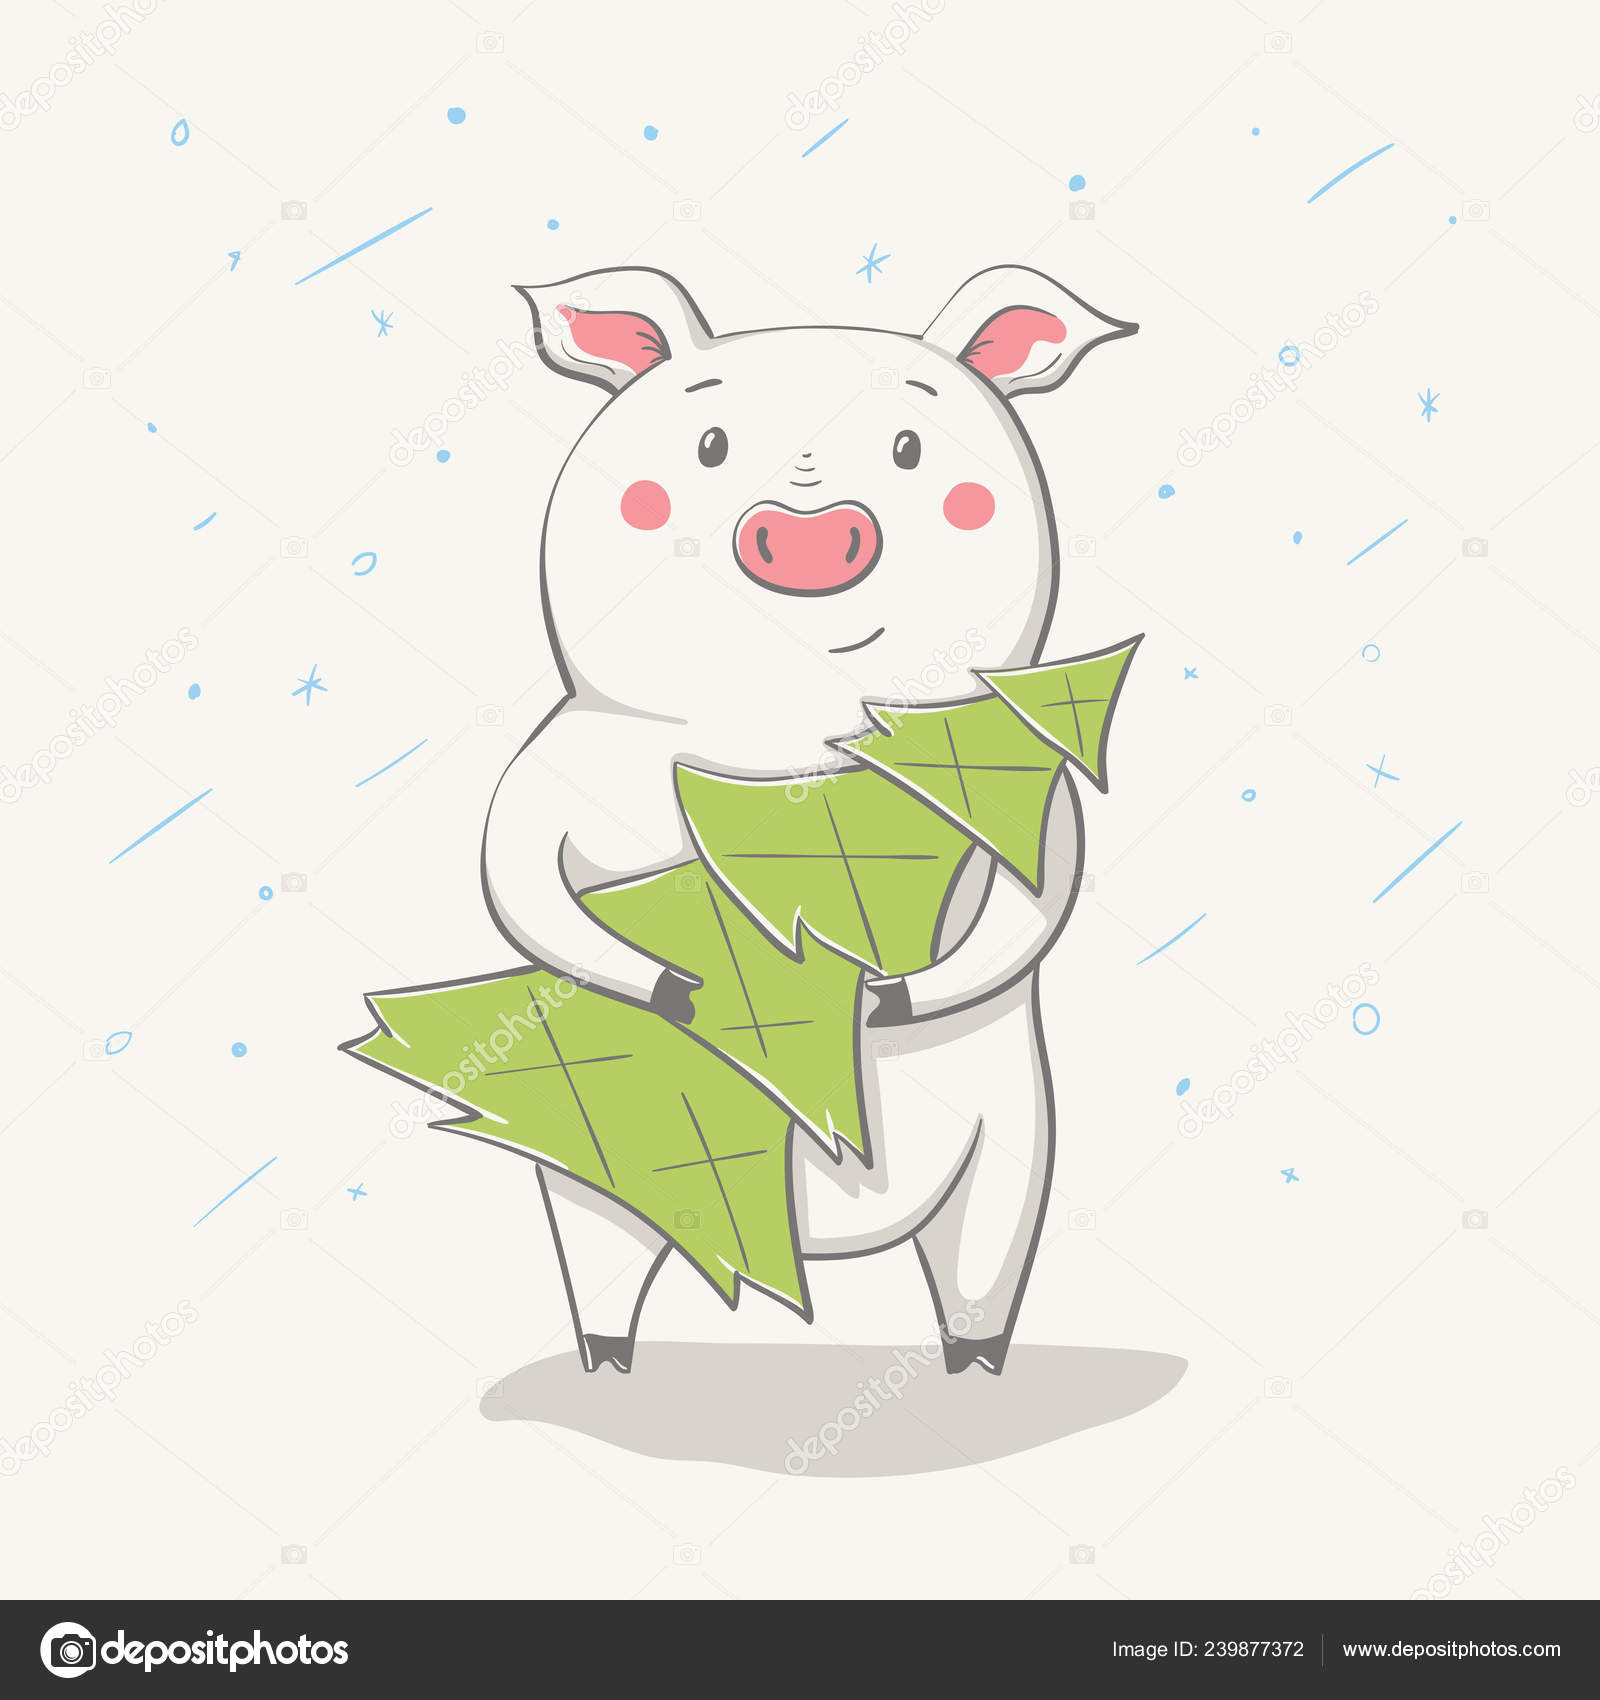 Lovely Cute Cheerful Piggy Christmas Tree Card Cartoon Animal Easy Stock Vector C Nychytalyuk 239877372 Make charming christmas video greetings and congratulate your dear this year ones with a unique christmas video made with renderforest video maker. lovely cute cheerful piggy christmas tree card cartoon animal easy stock vector c nychytalyuk 239877372